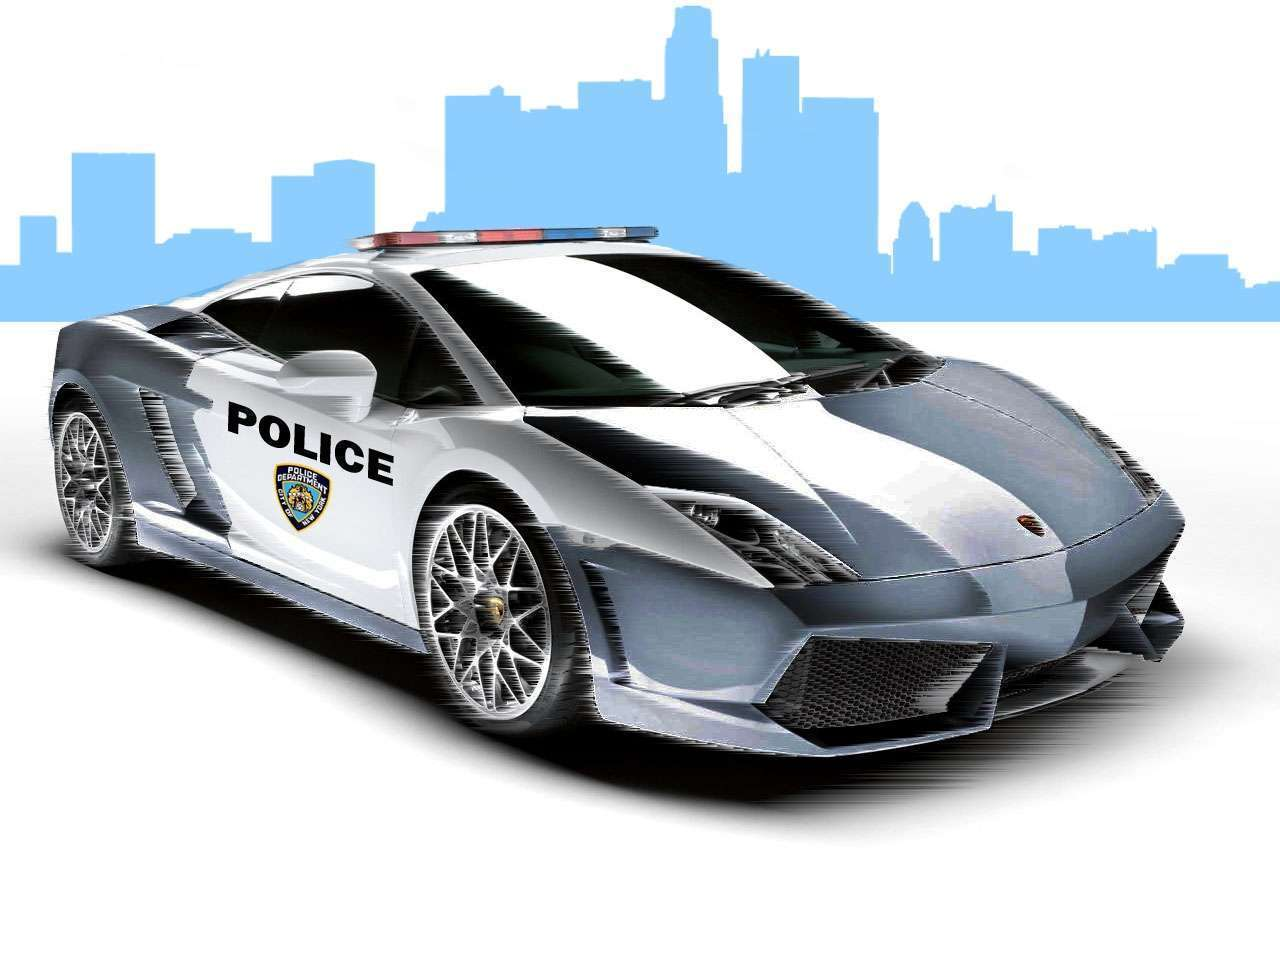 lamborghini police car wallpaper Car Pictures 1280x960